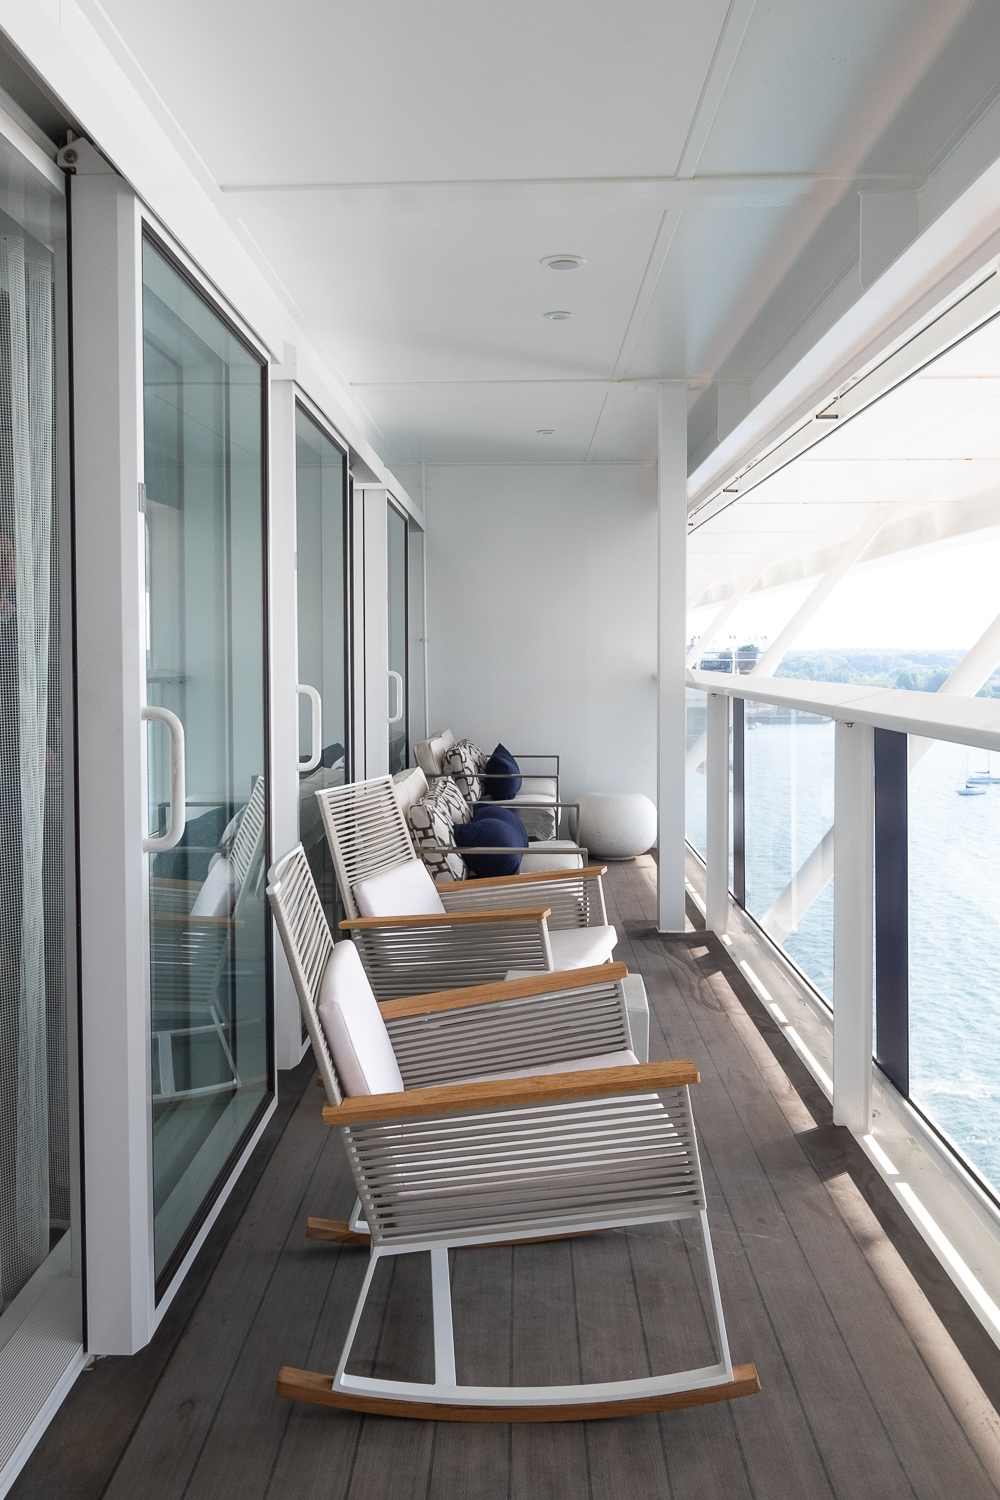 Balcony in one of the penthouse suites | 12 reasons to choose Celebrity Edge for your next cruise | Mondomulia